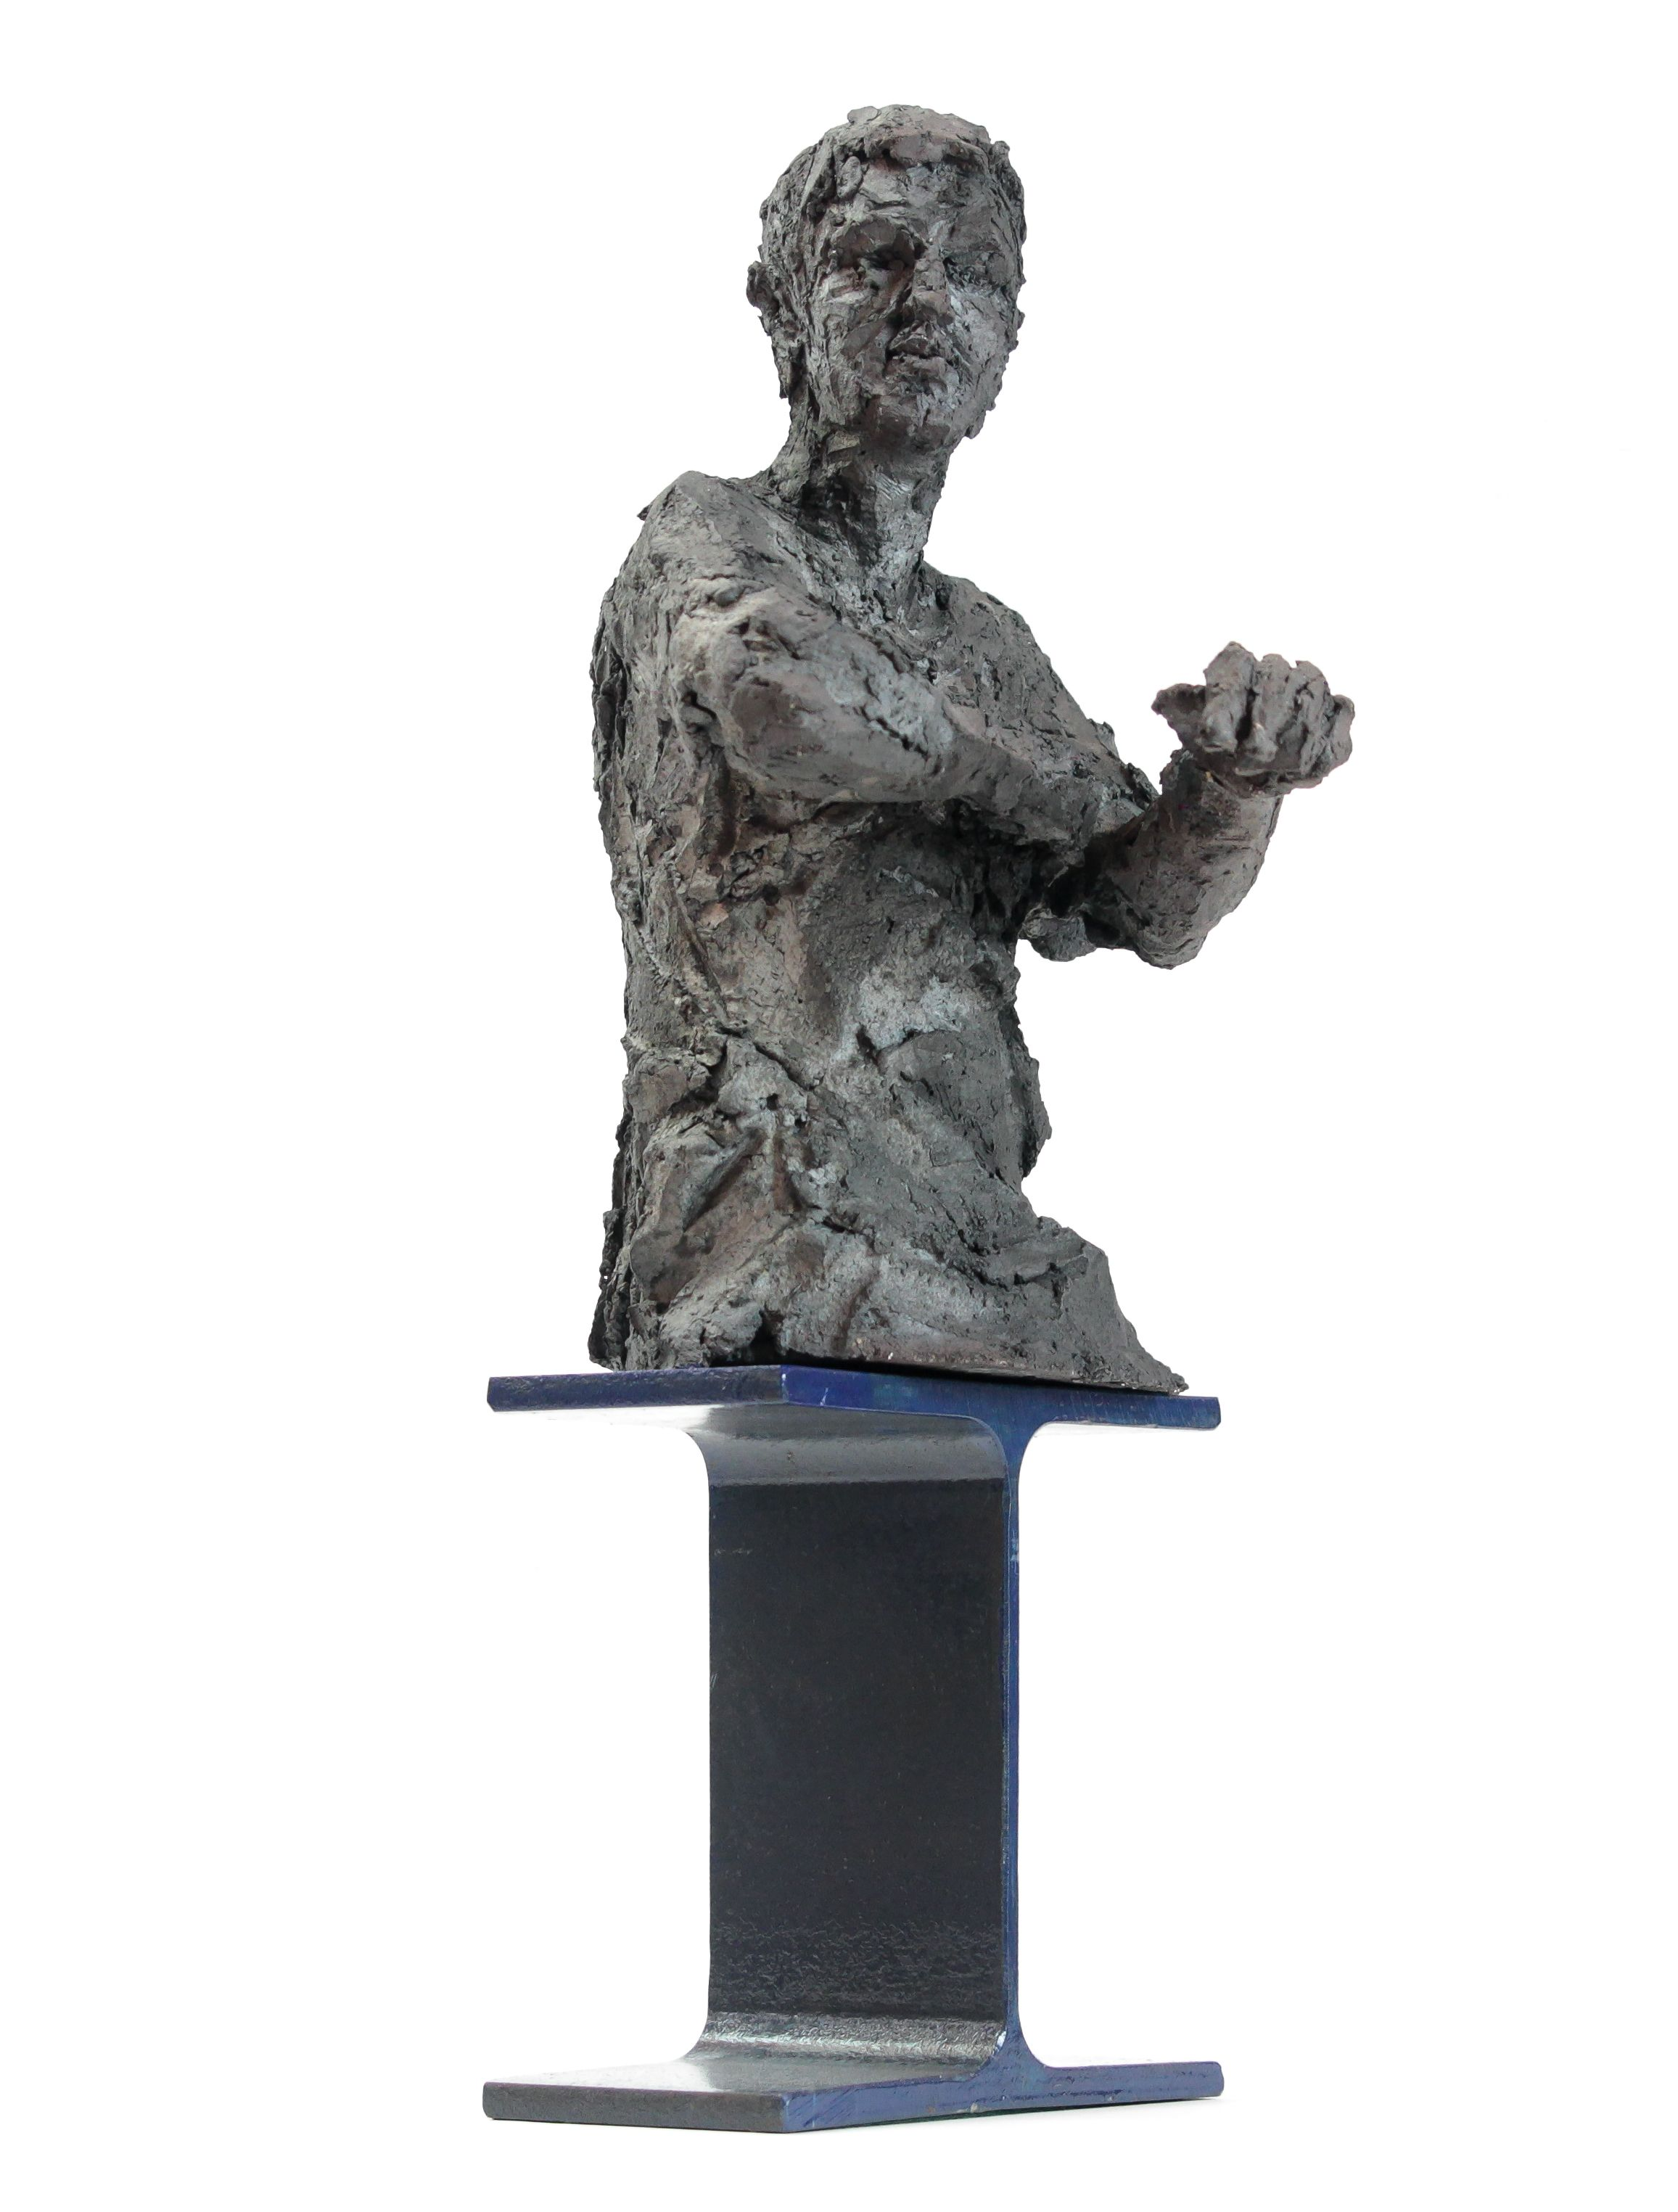 Bosco (with Jérôme),Cécile Raynal,Sculpture